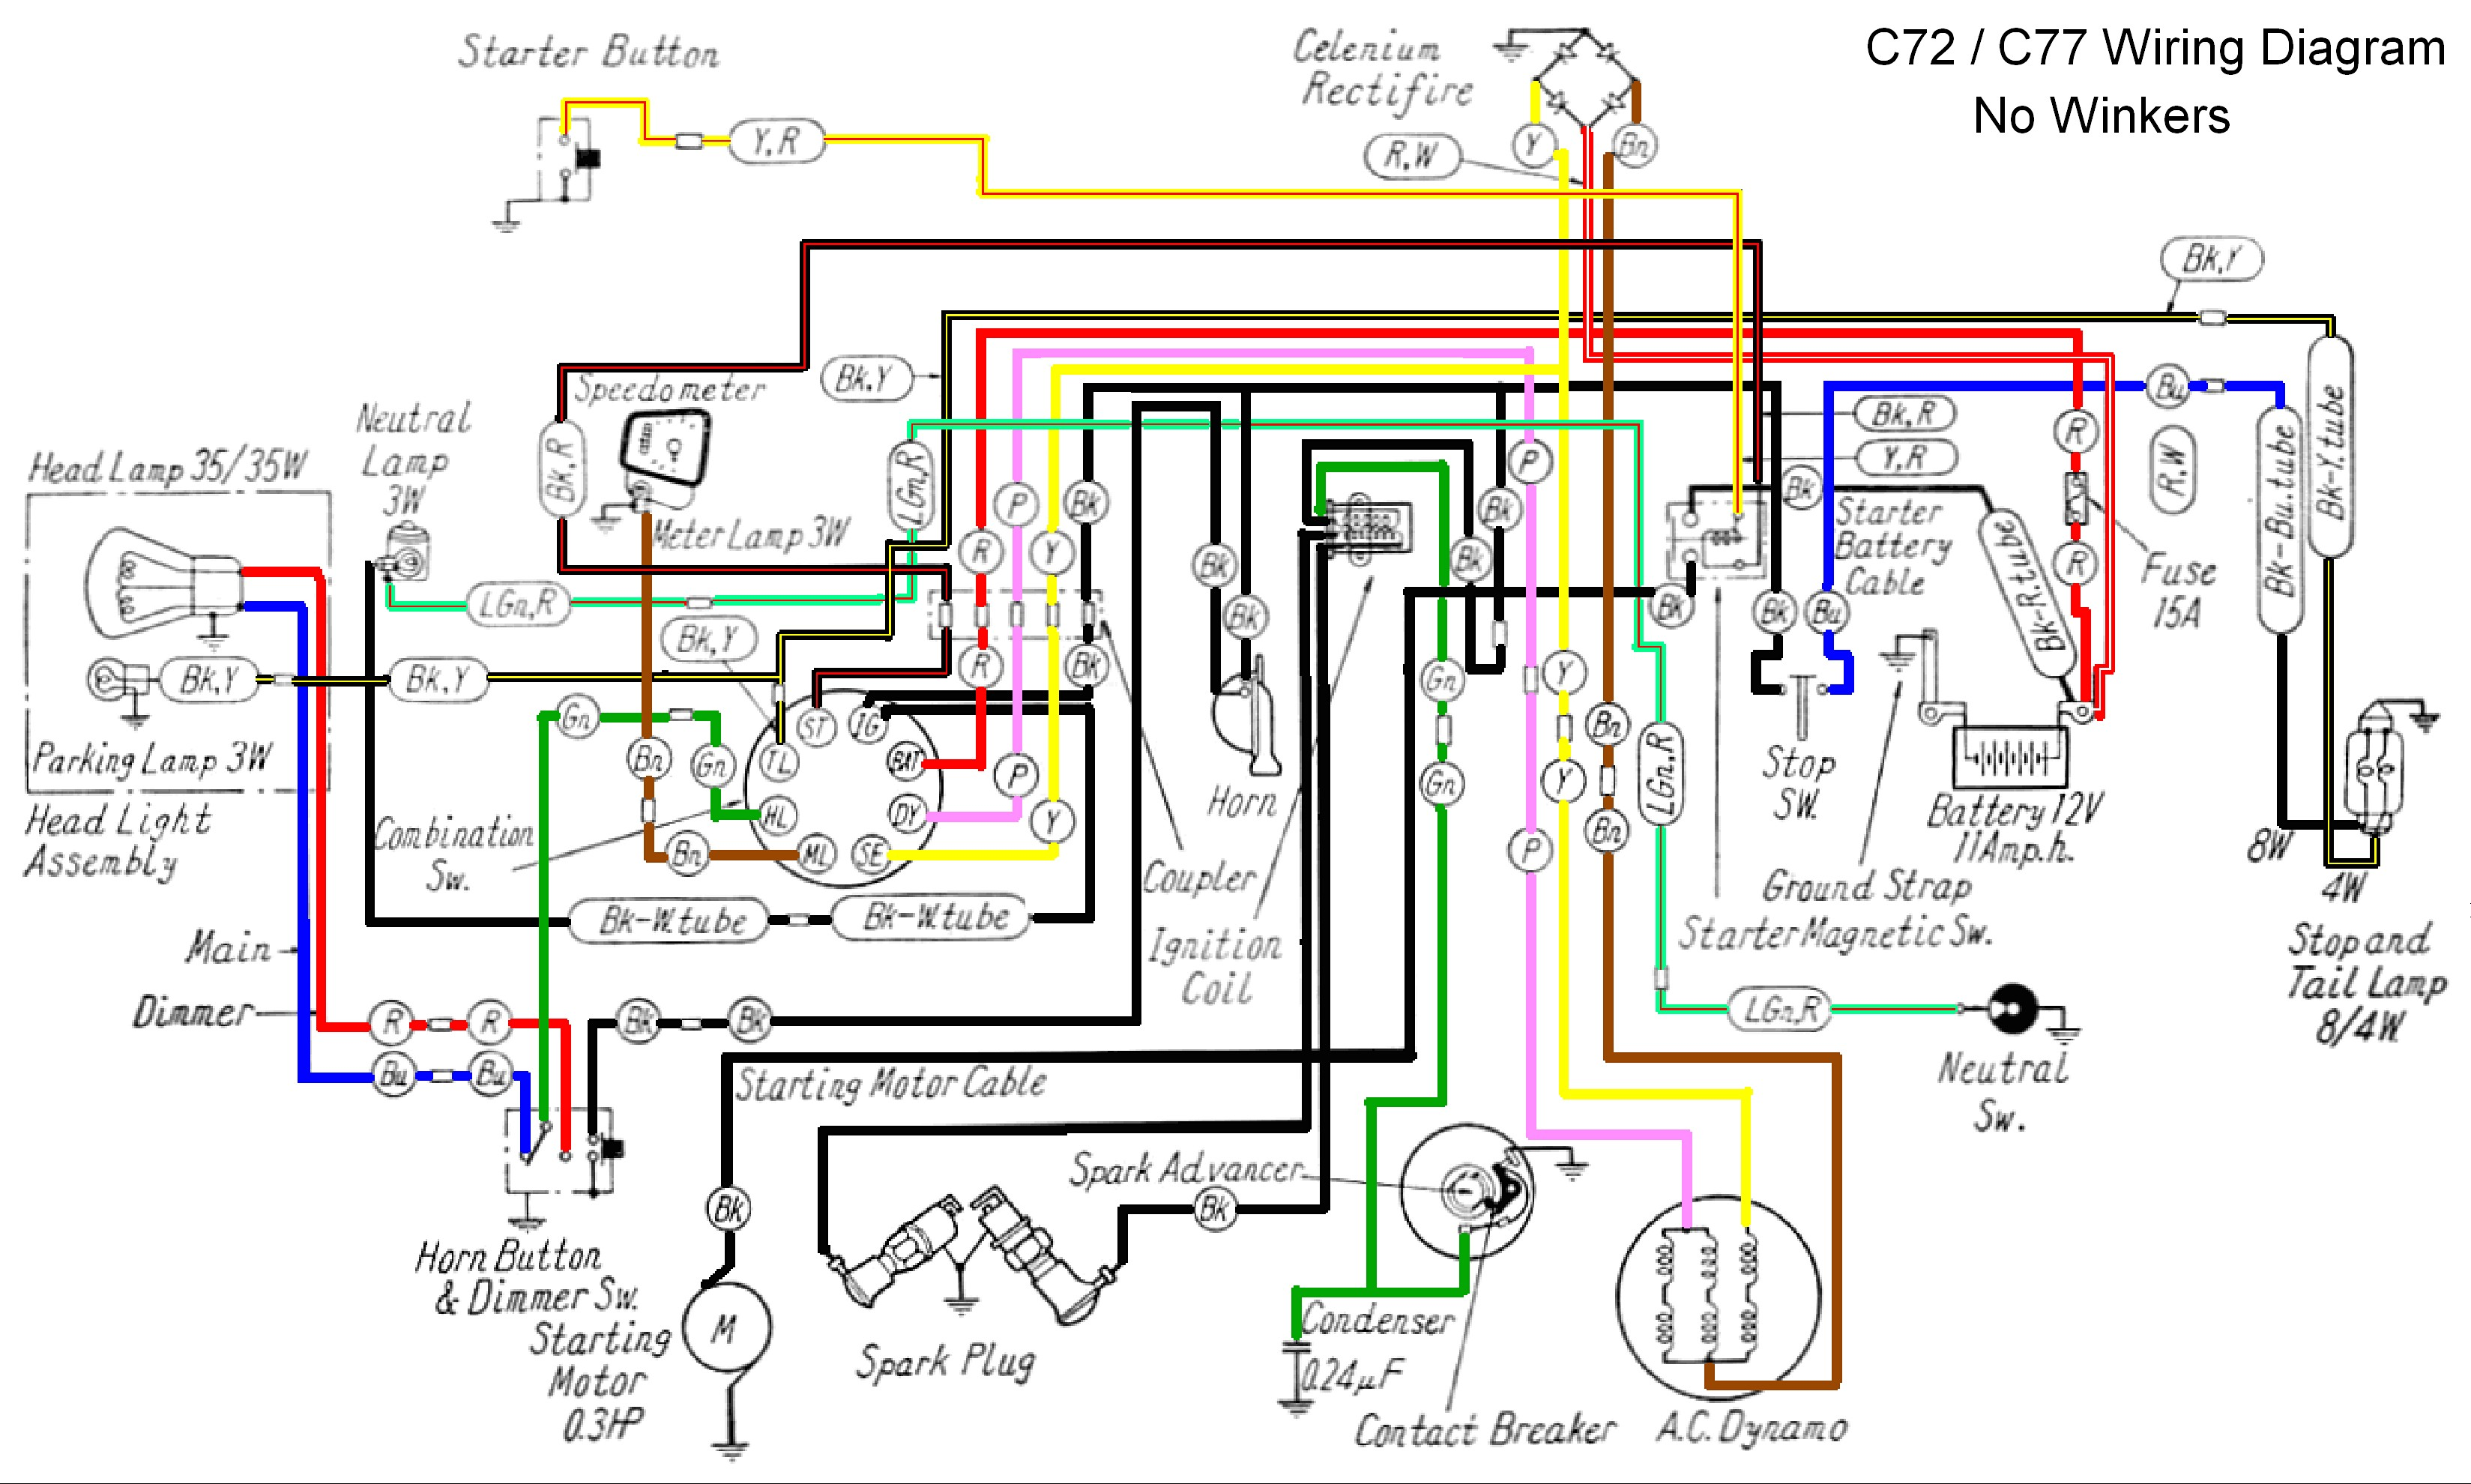 Indian Chief Wiring Diagram Trusted Diagrams. 2002 Indian Chief Wiring Diagram Trusted Diagrams Jaguar Harley Ignition 2015. Wiring. 1947 Indian Chief Wiring Diagram At Scoala.co